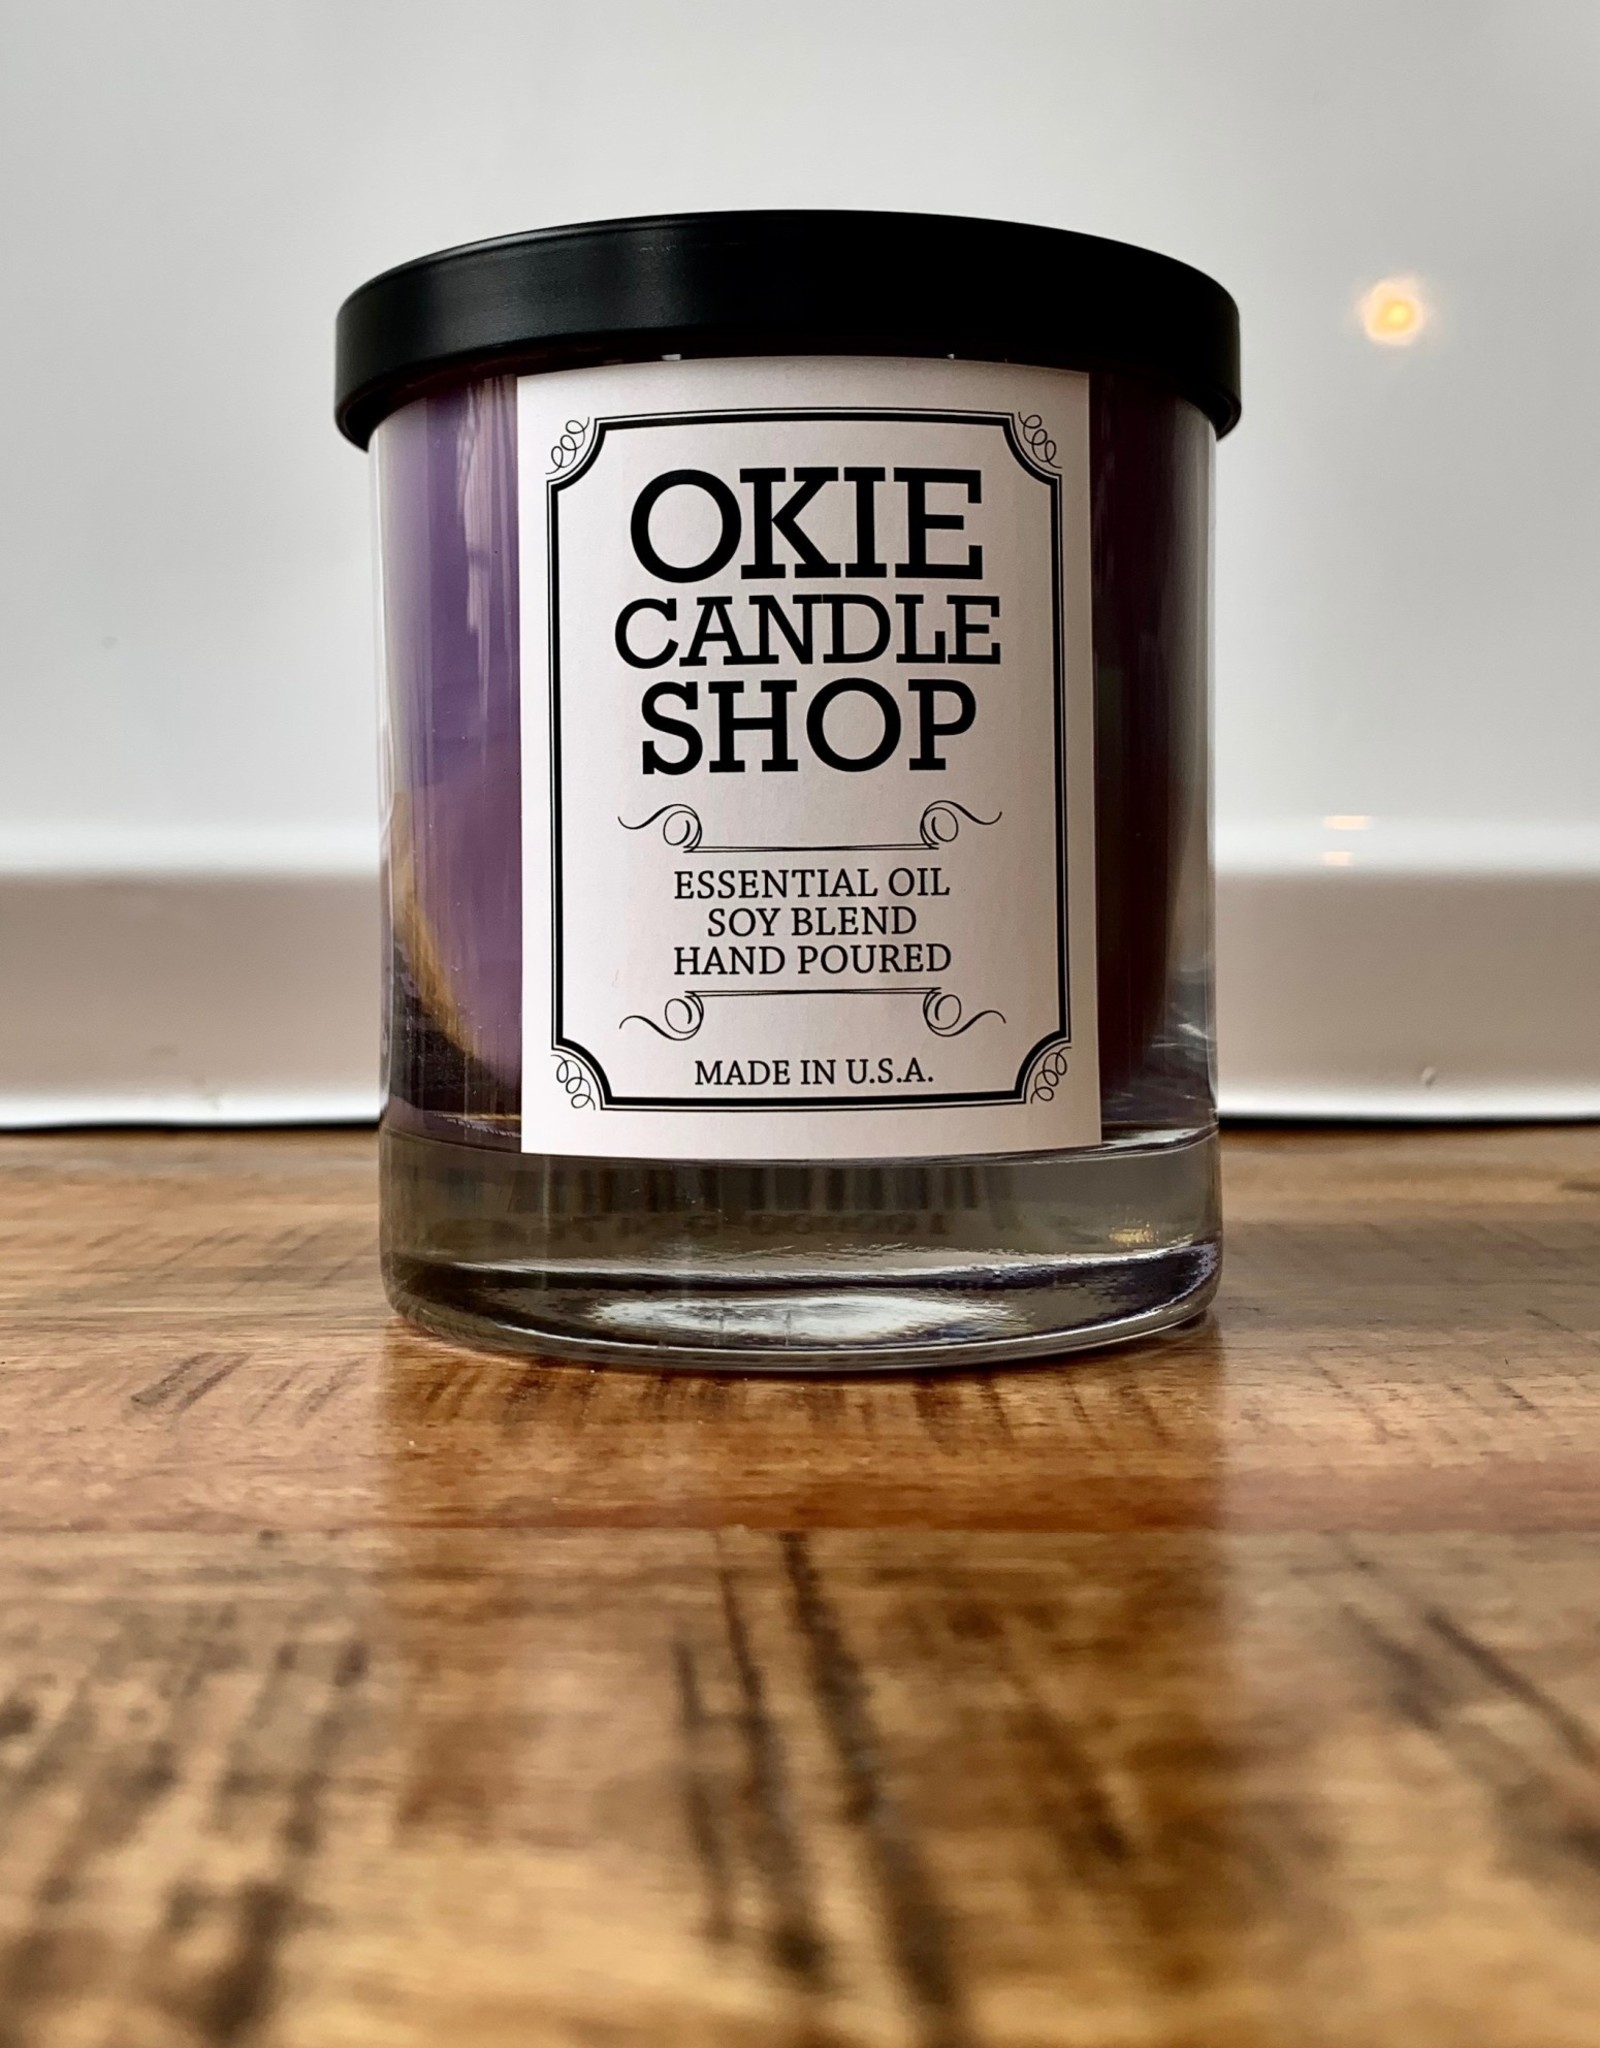 Okie Candle